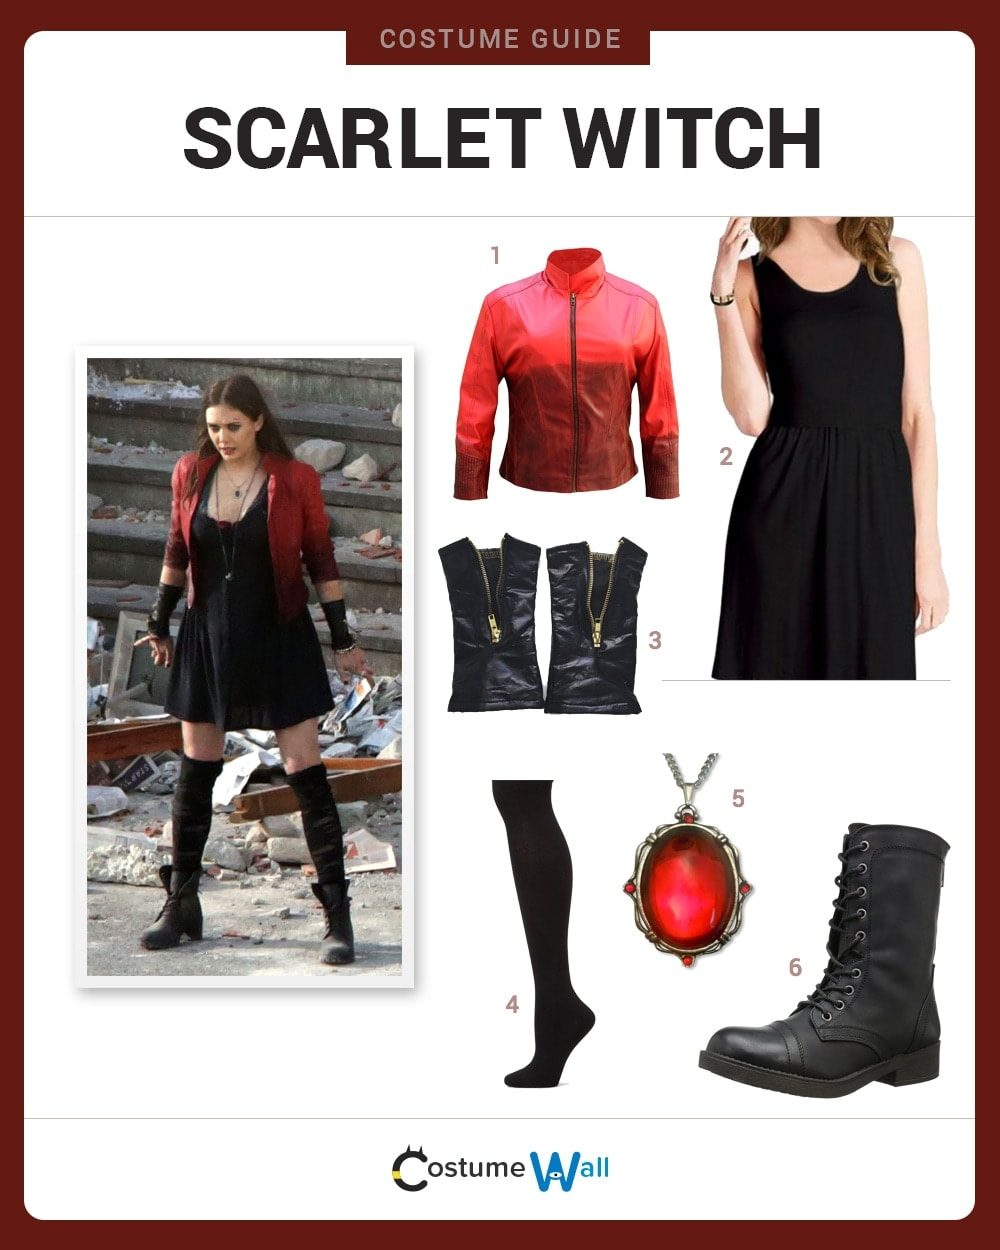 Scarlet Witch Costume Guide